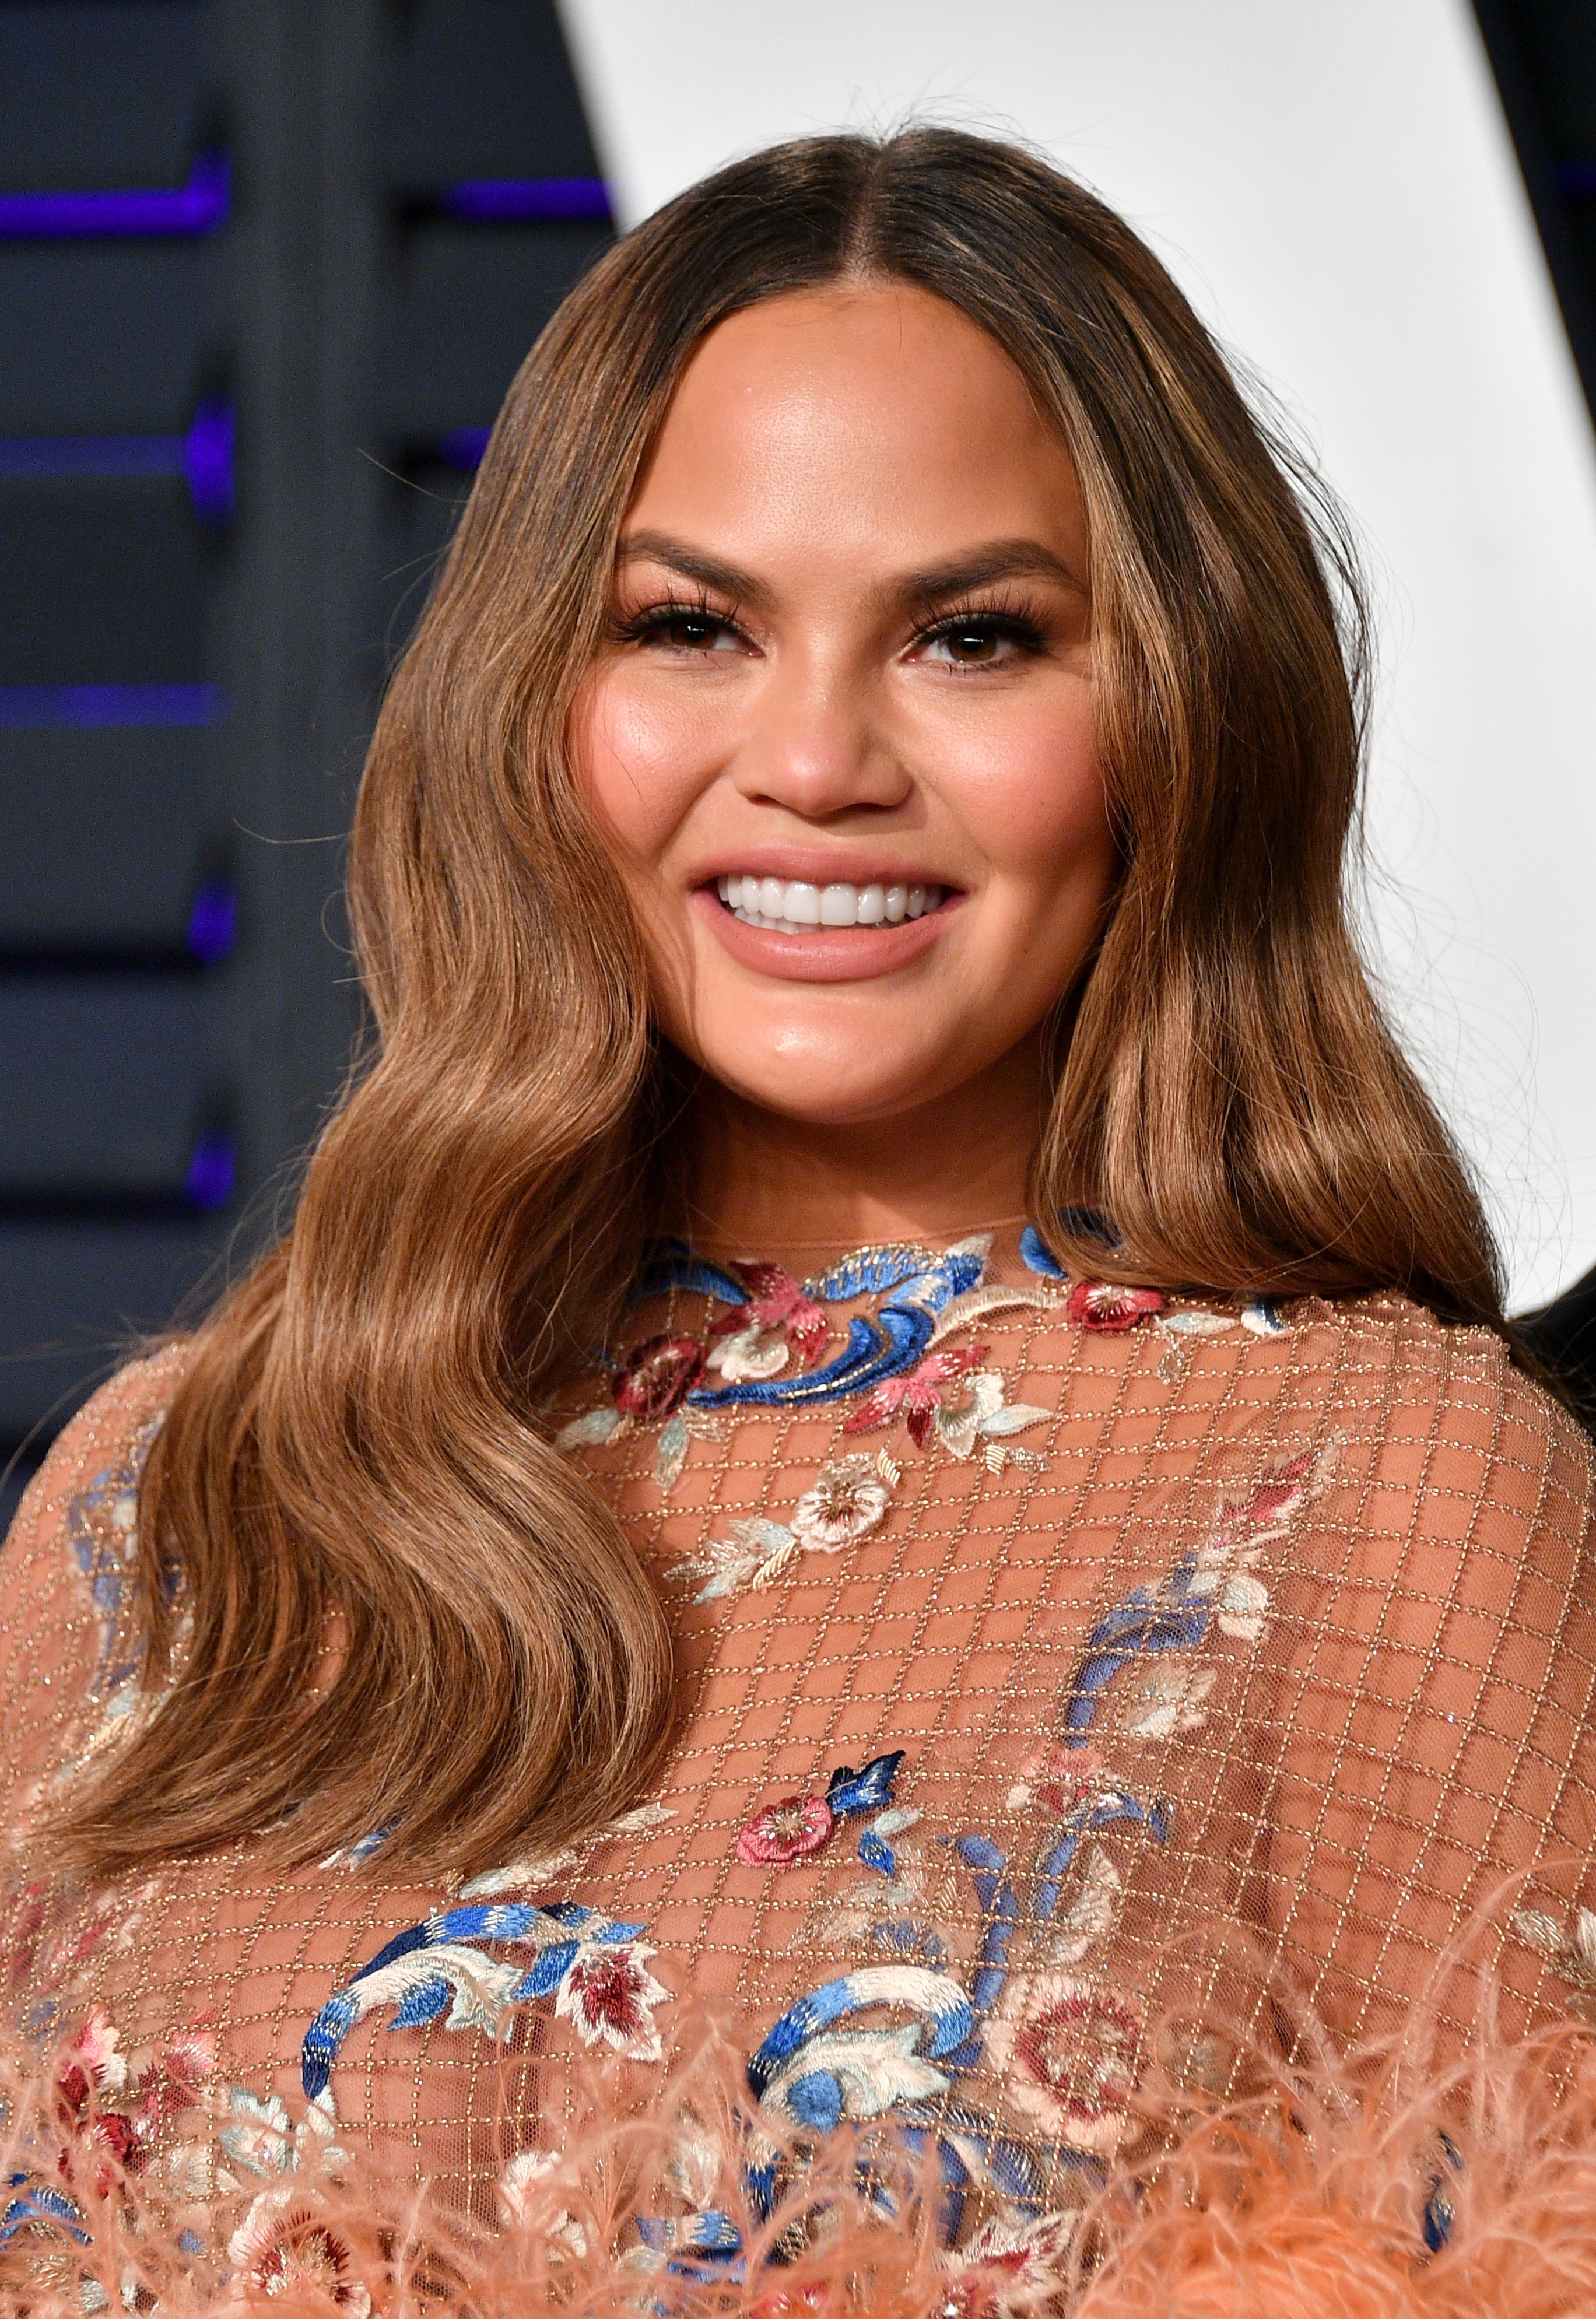 Chrissy Teigen got Covid-19 test in prep for breast implant removal